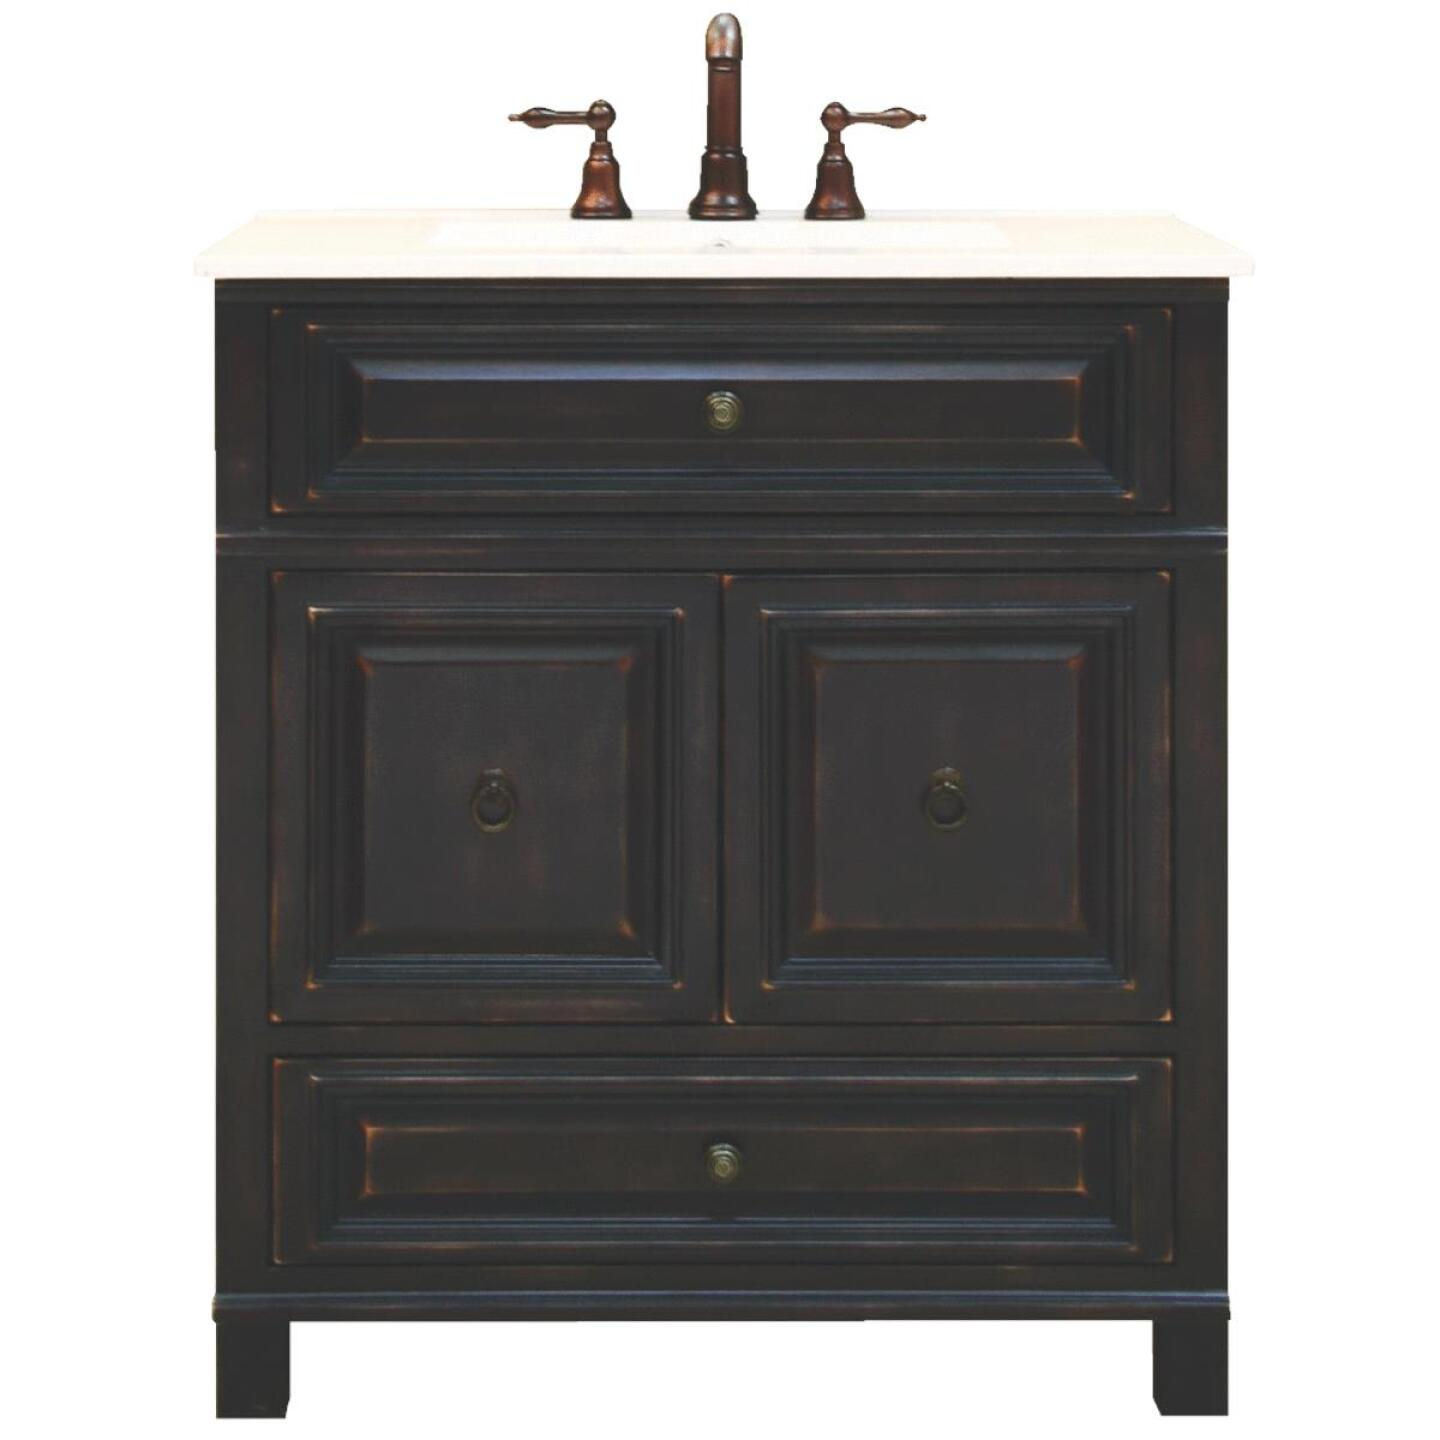 Sunny Wood Barton Hill Black Onyx 30 In. W x 34 In. H x 21 In. D Vanity Base, 2 Door/1 Drawer Image 175